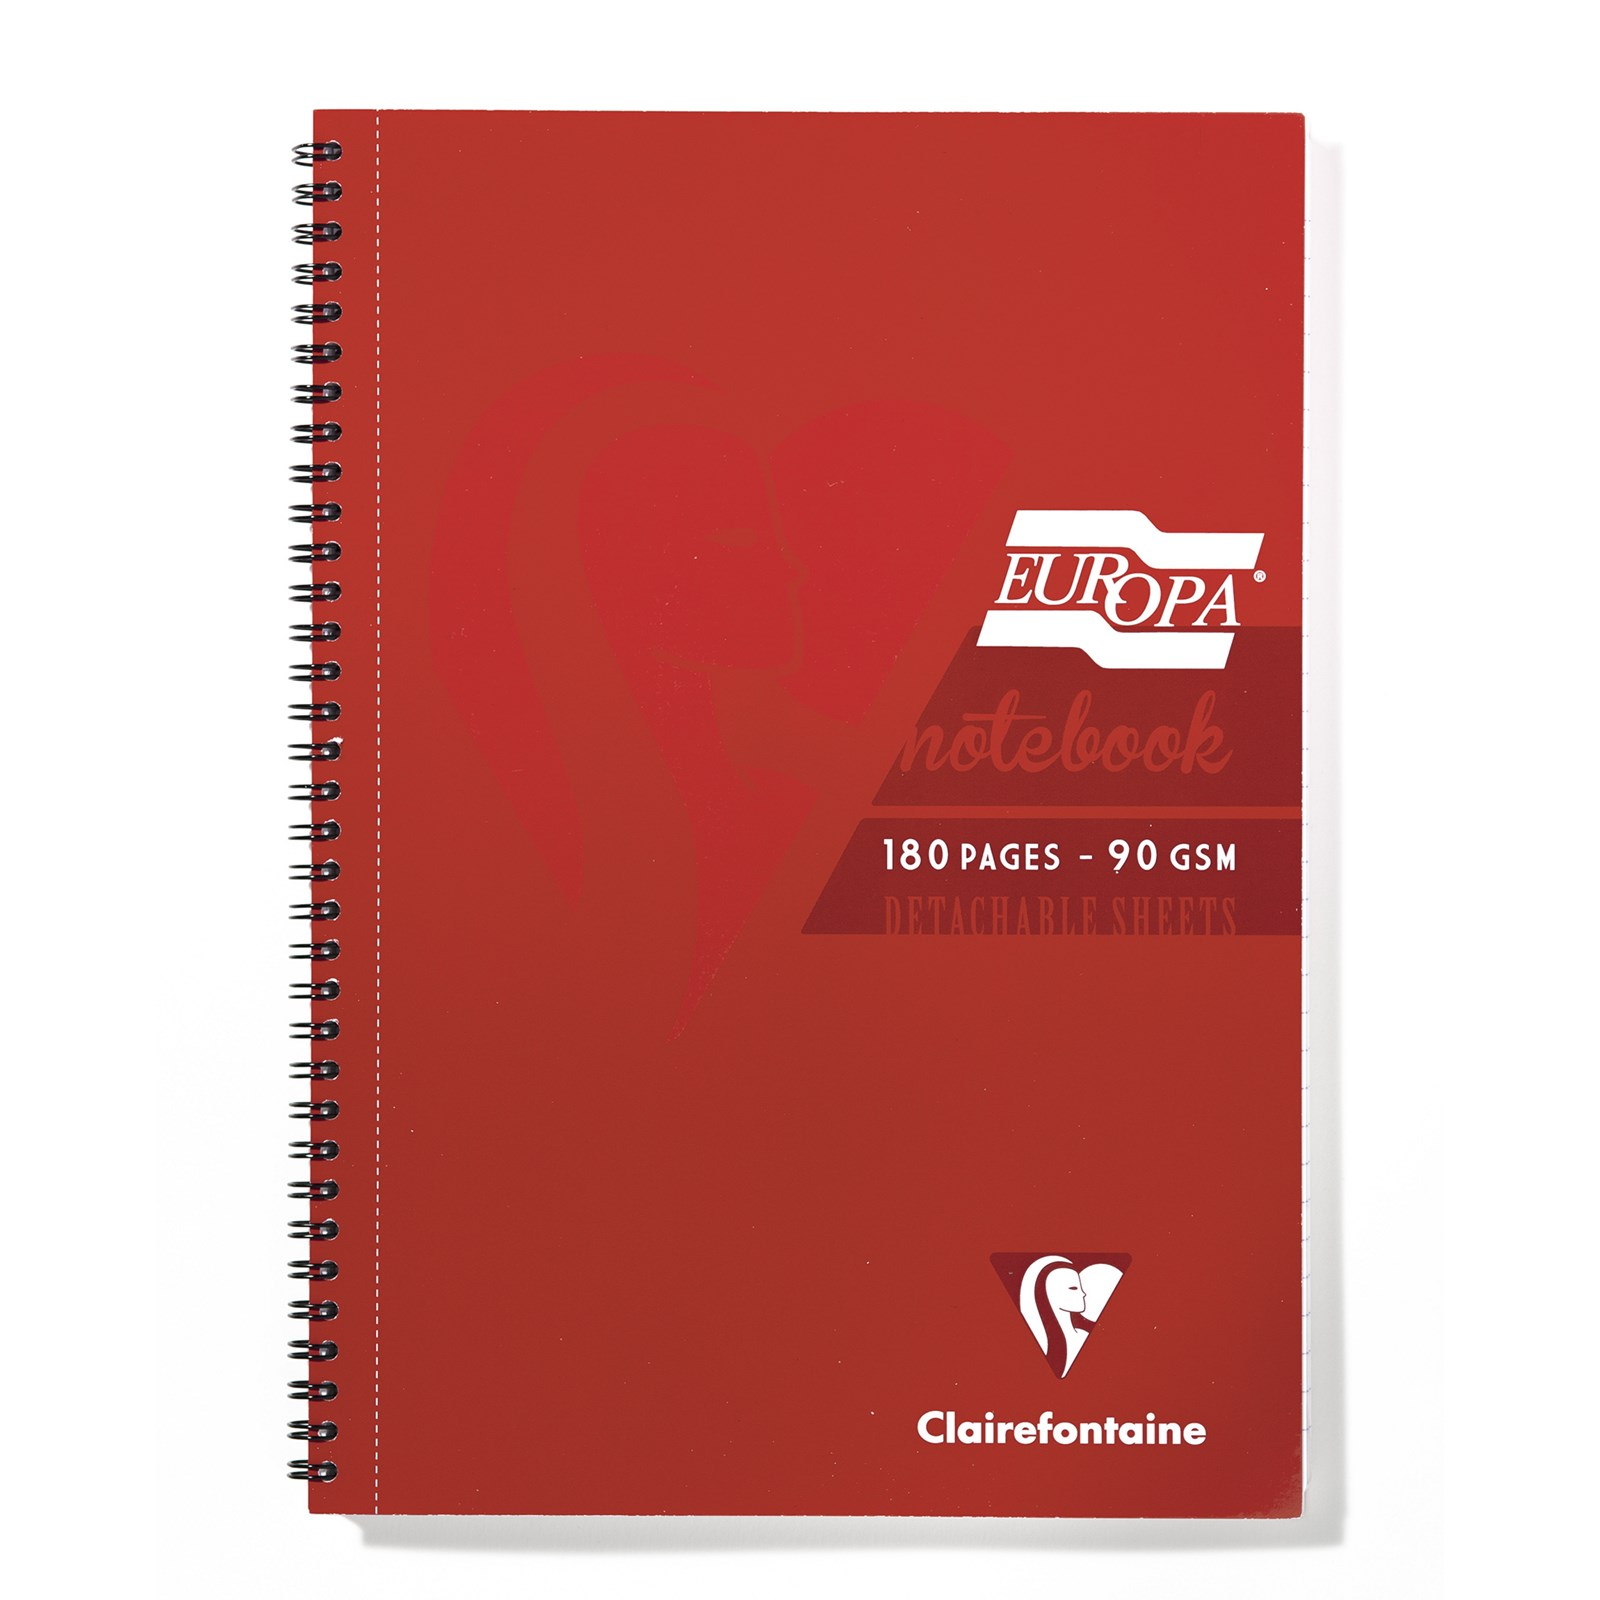 NEW Europa Note Book  - A4 Red